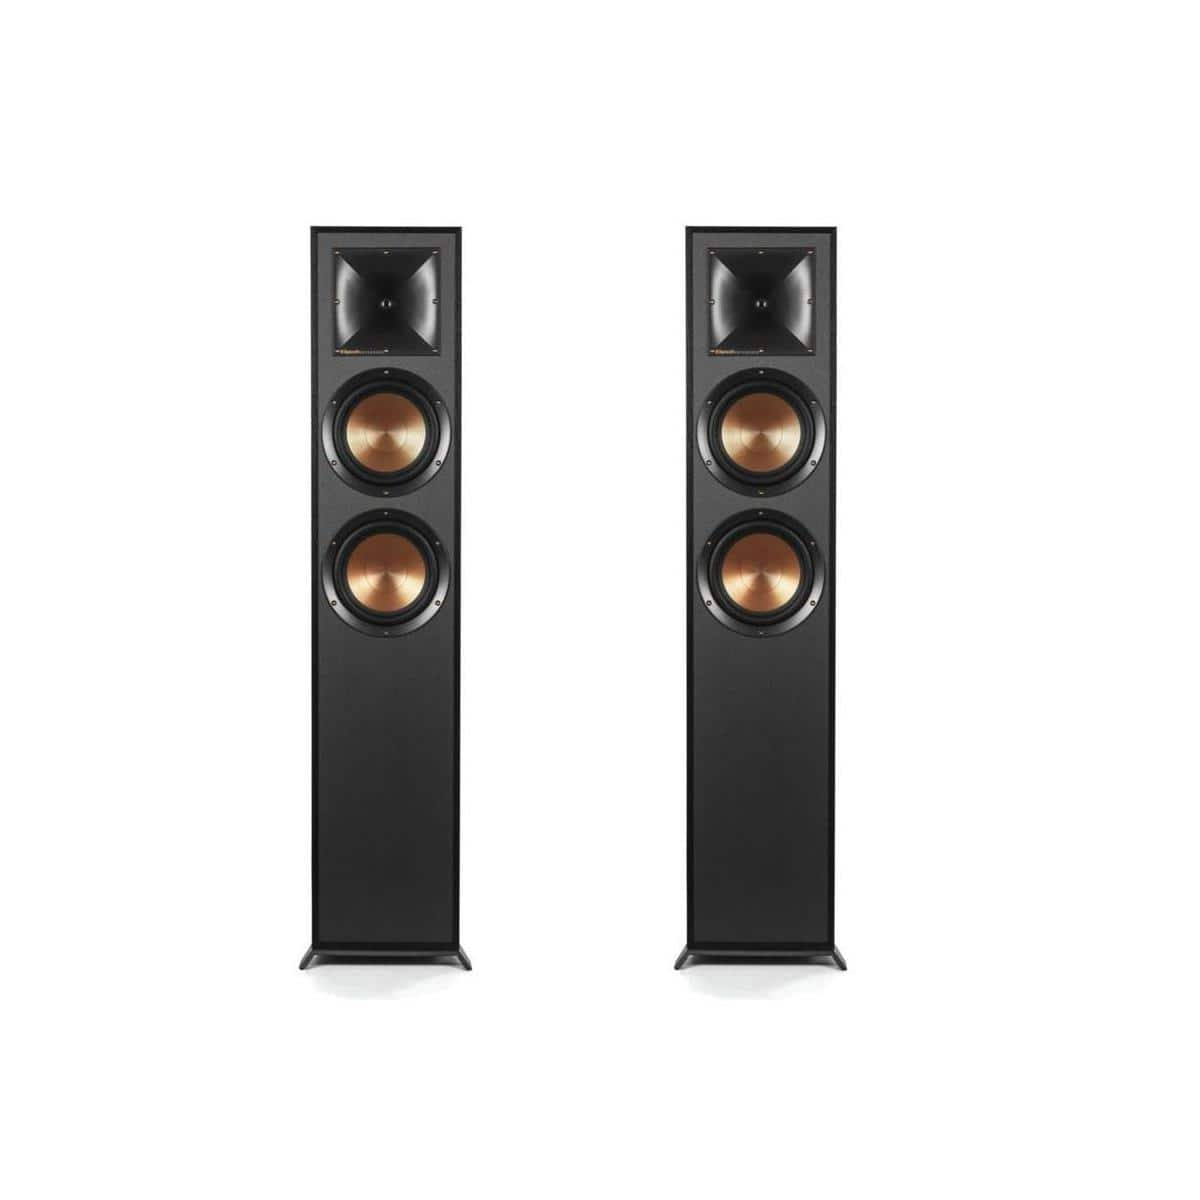 Klipsch R-625FA Dolby Atmos Floor Standing Speakers (Pair) $549 + free s/h at Adorama